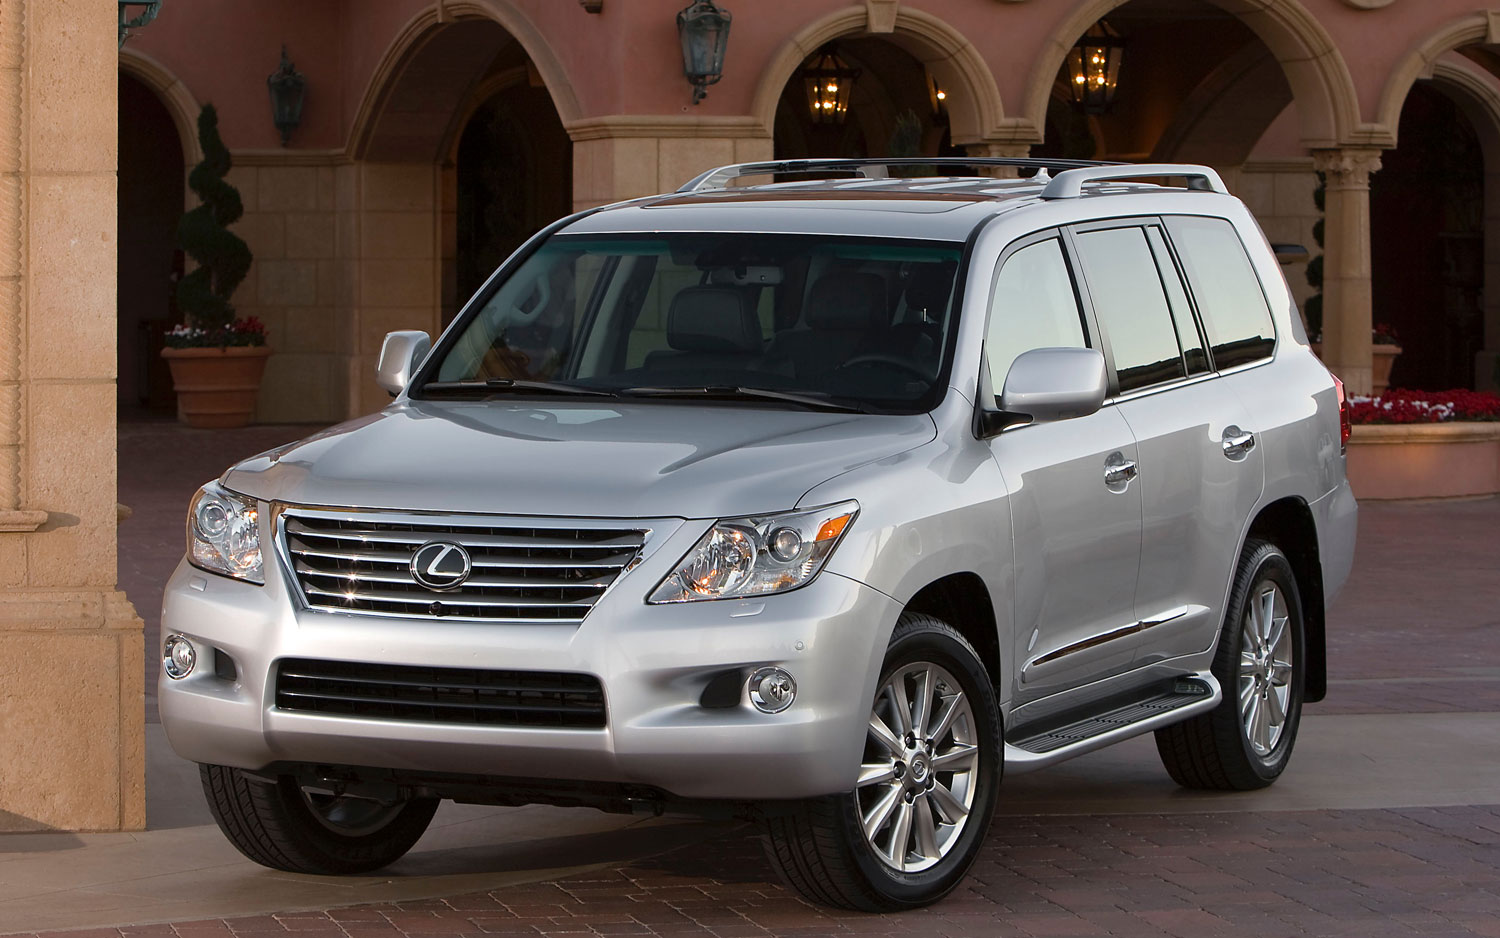 2011 Lexus Lx570 Front Left View Parked